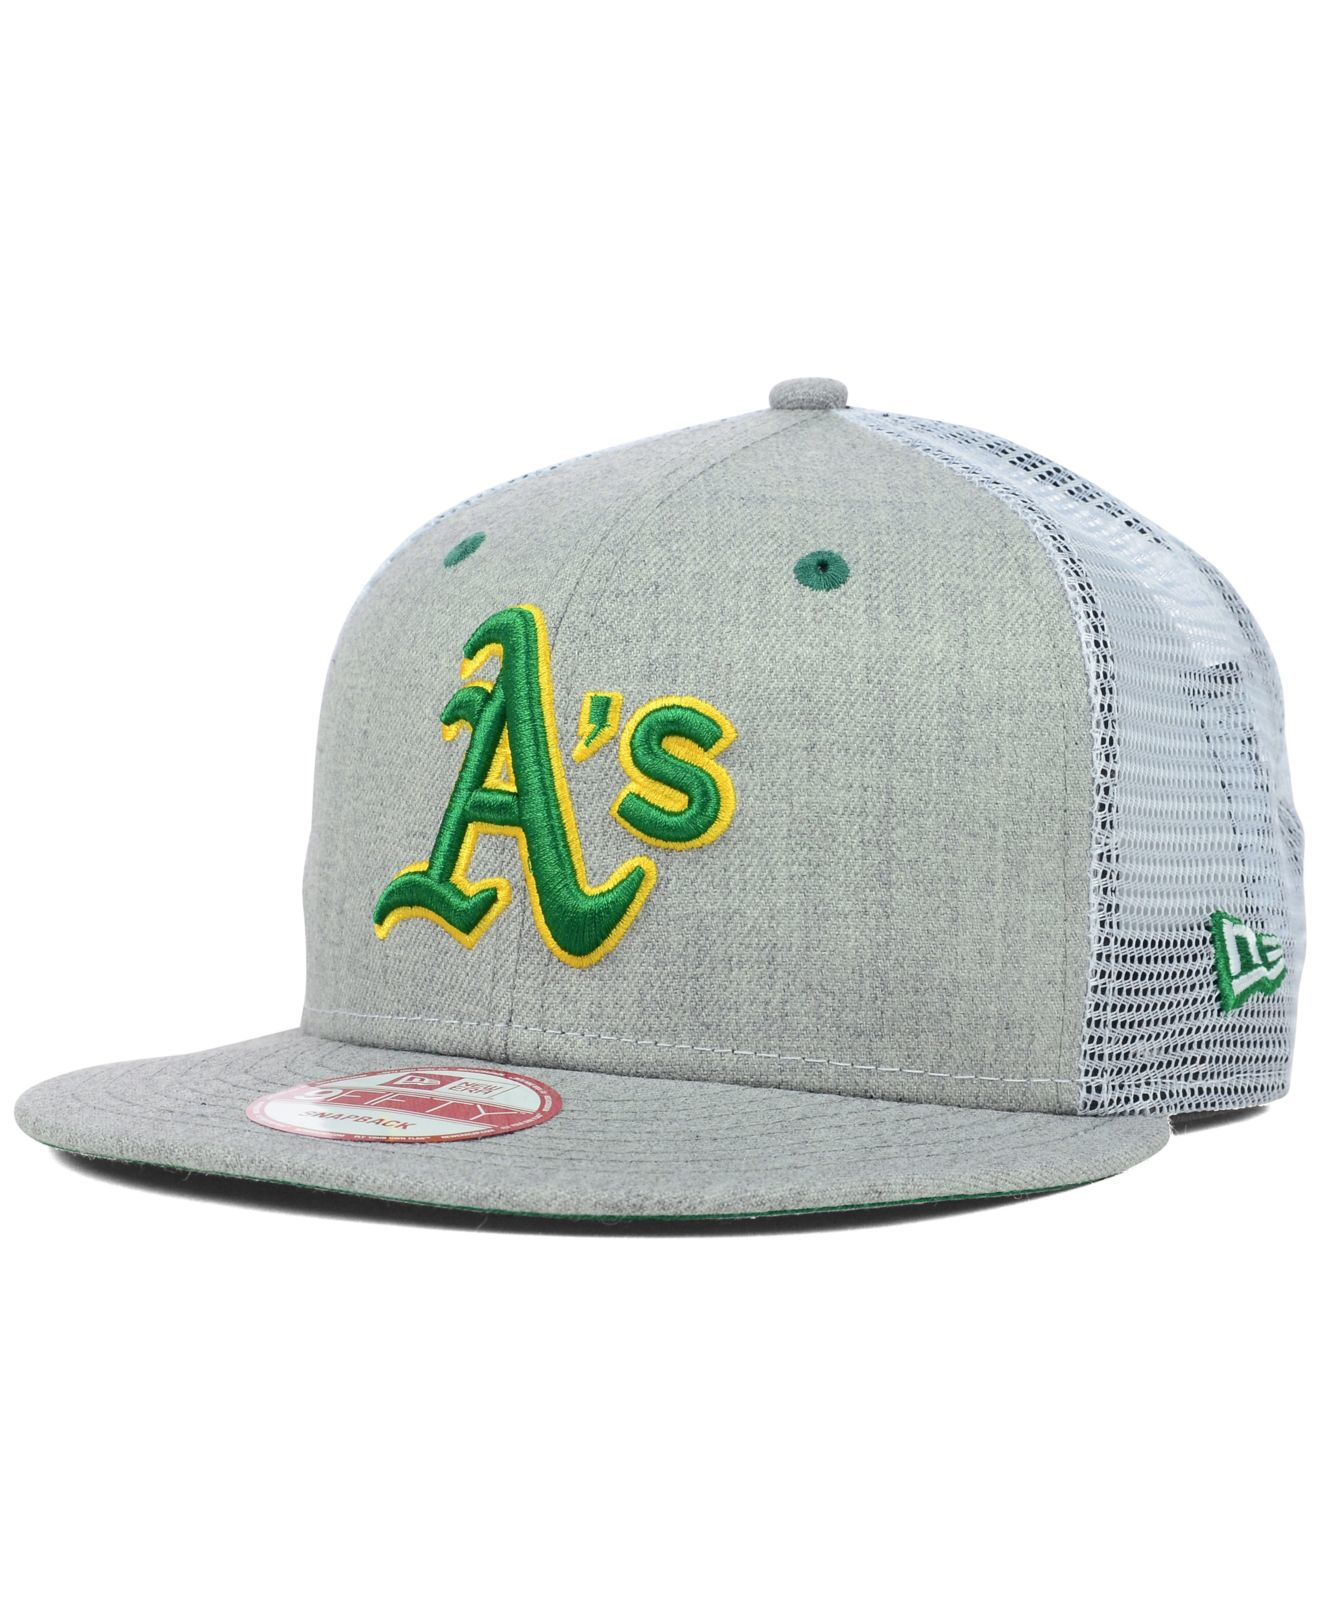 new style 22a7d c391d ... new arrivals lyst ktz oakland athletics heather trucker 9fifty snapback  cap in a2774 05b41